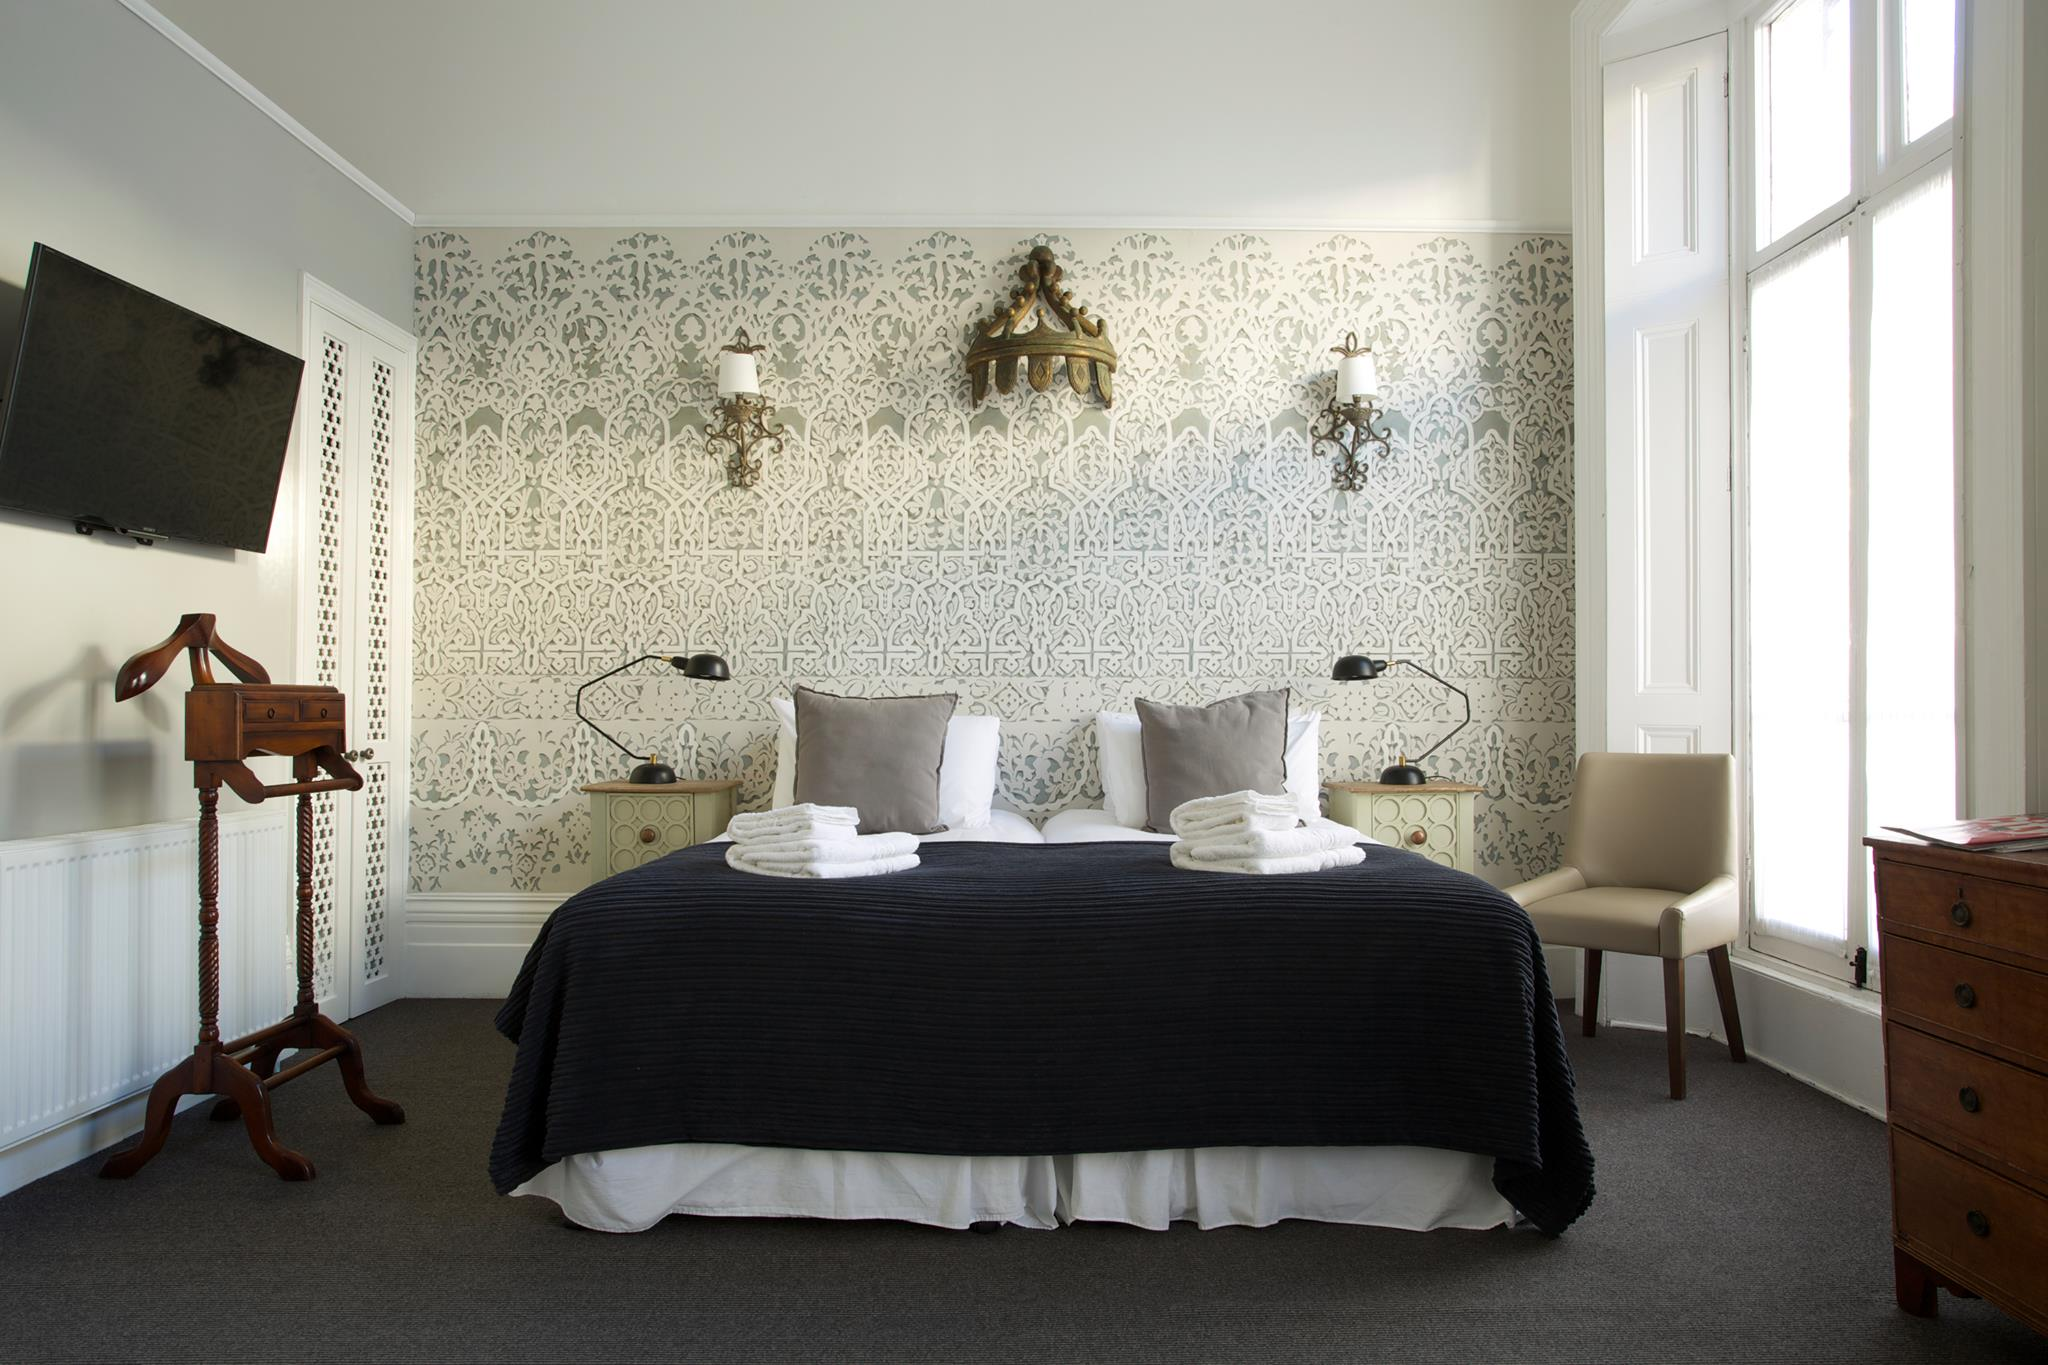 Best Boutique Hotels in London for a Weekend Getaway | Georgian House Hotel